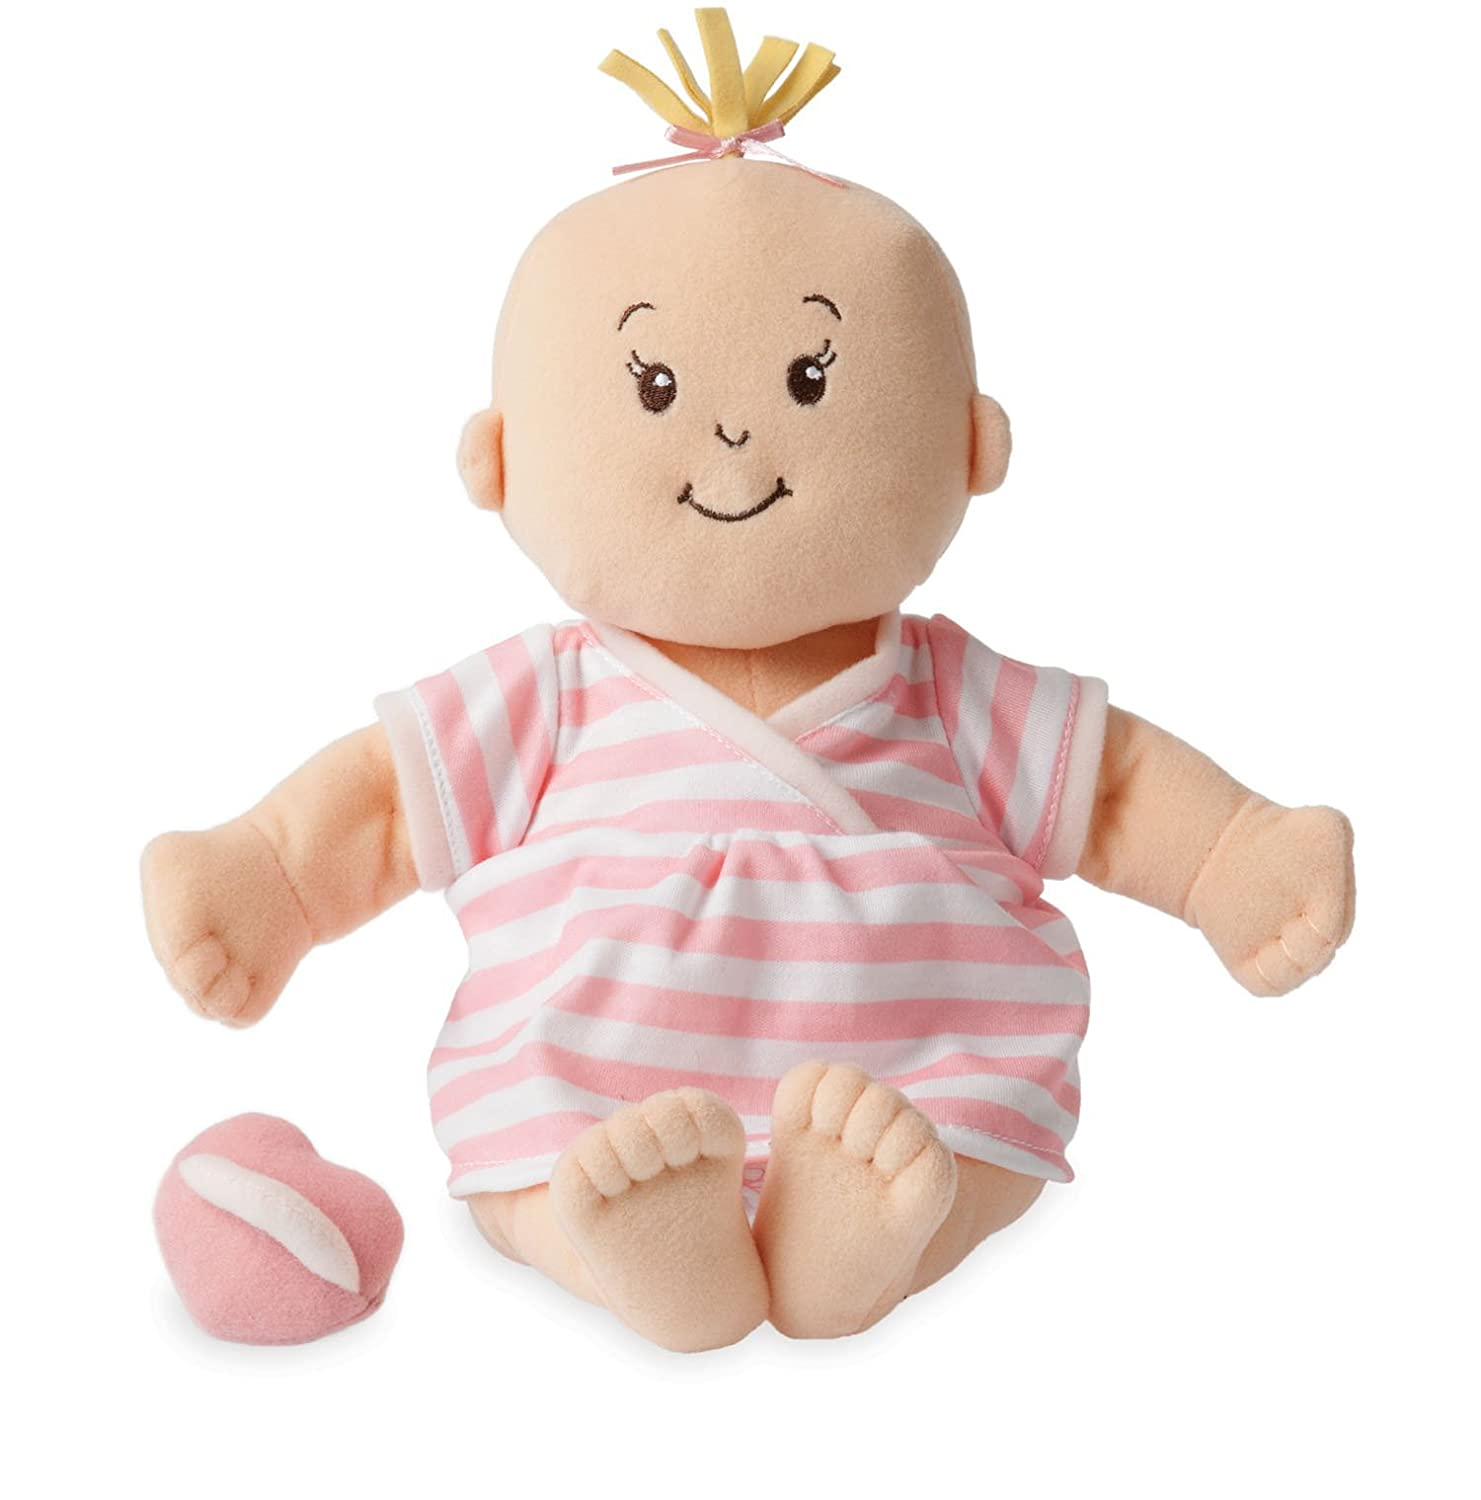 Toy Baby Doll : First christmas gifts for a baby girl cute ideas